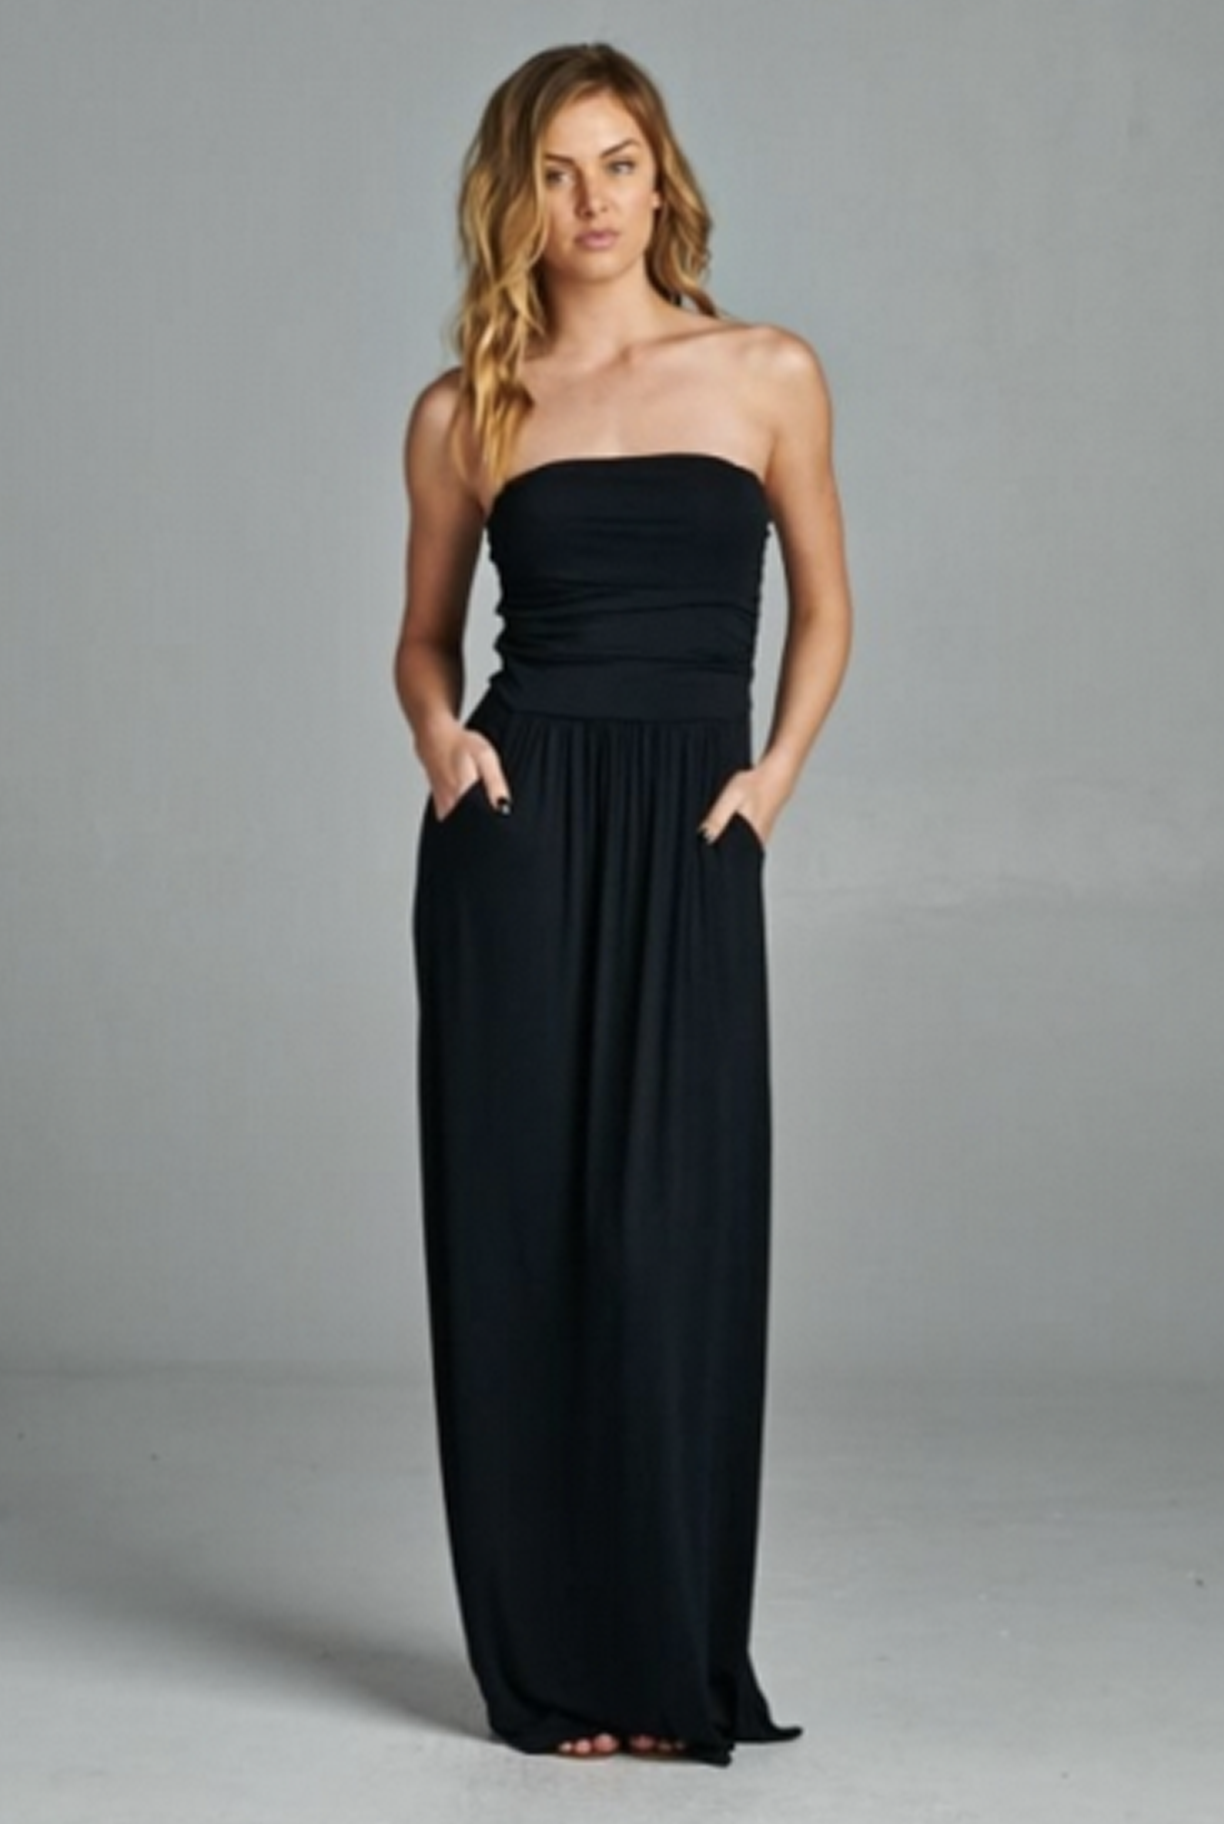 In The Moment Dress Black Strapless Maxi Dress Maxi Knit Dress Maxi Dress [ 1824 x 1224 Pixel ]